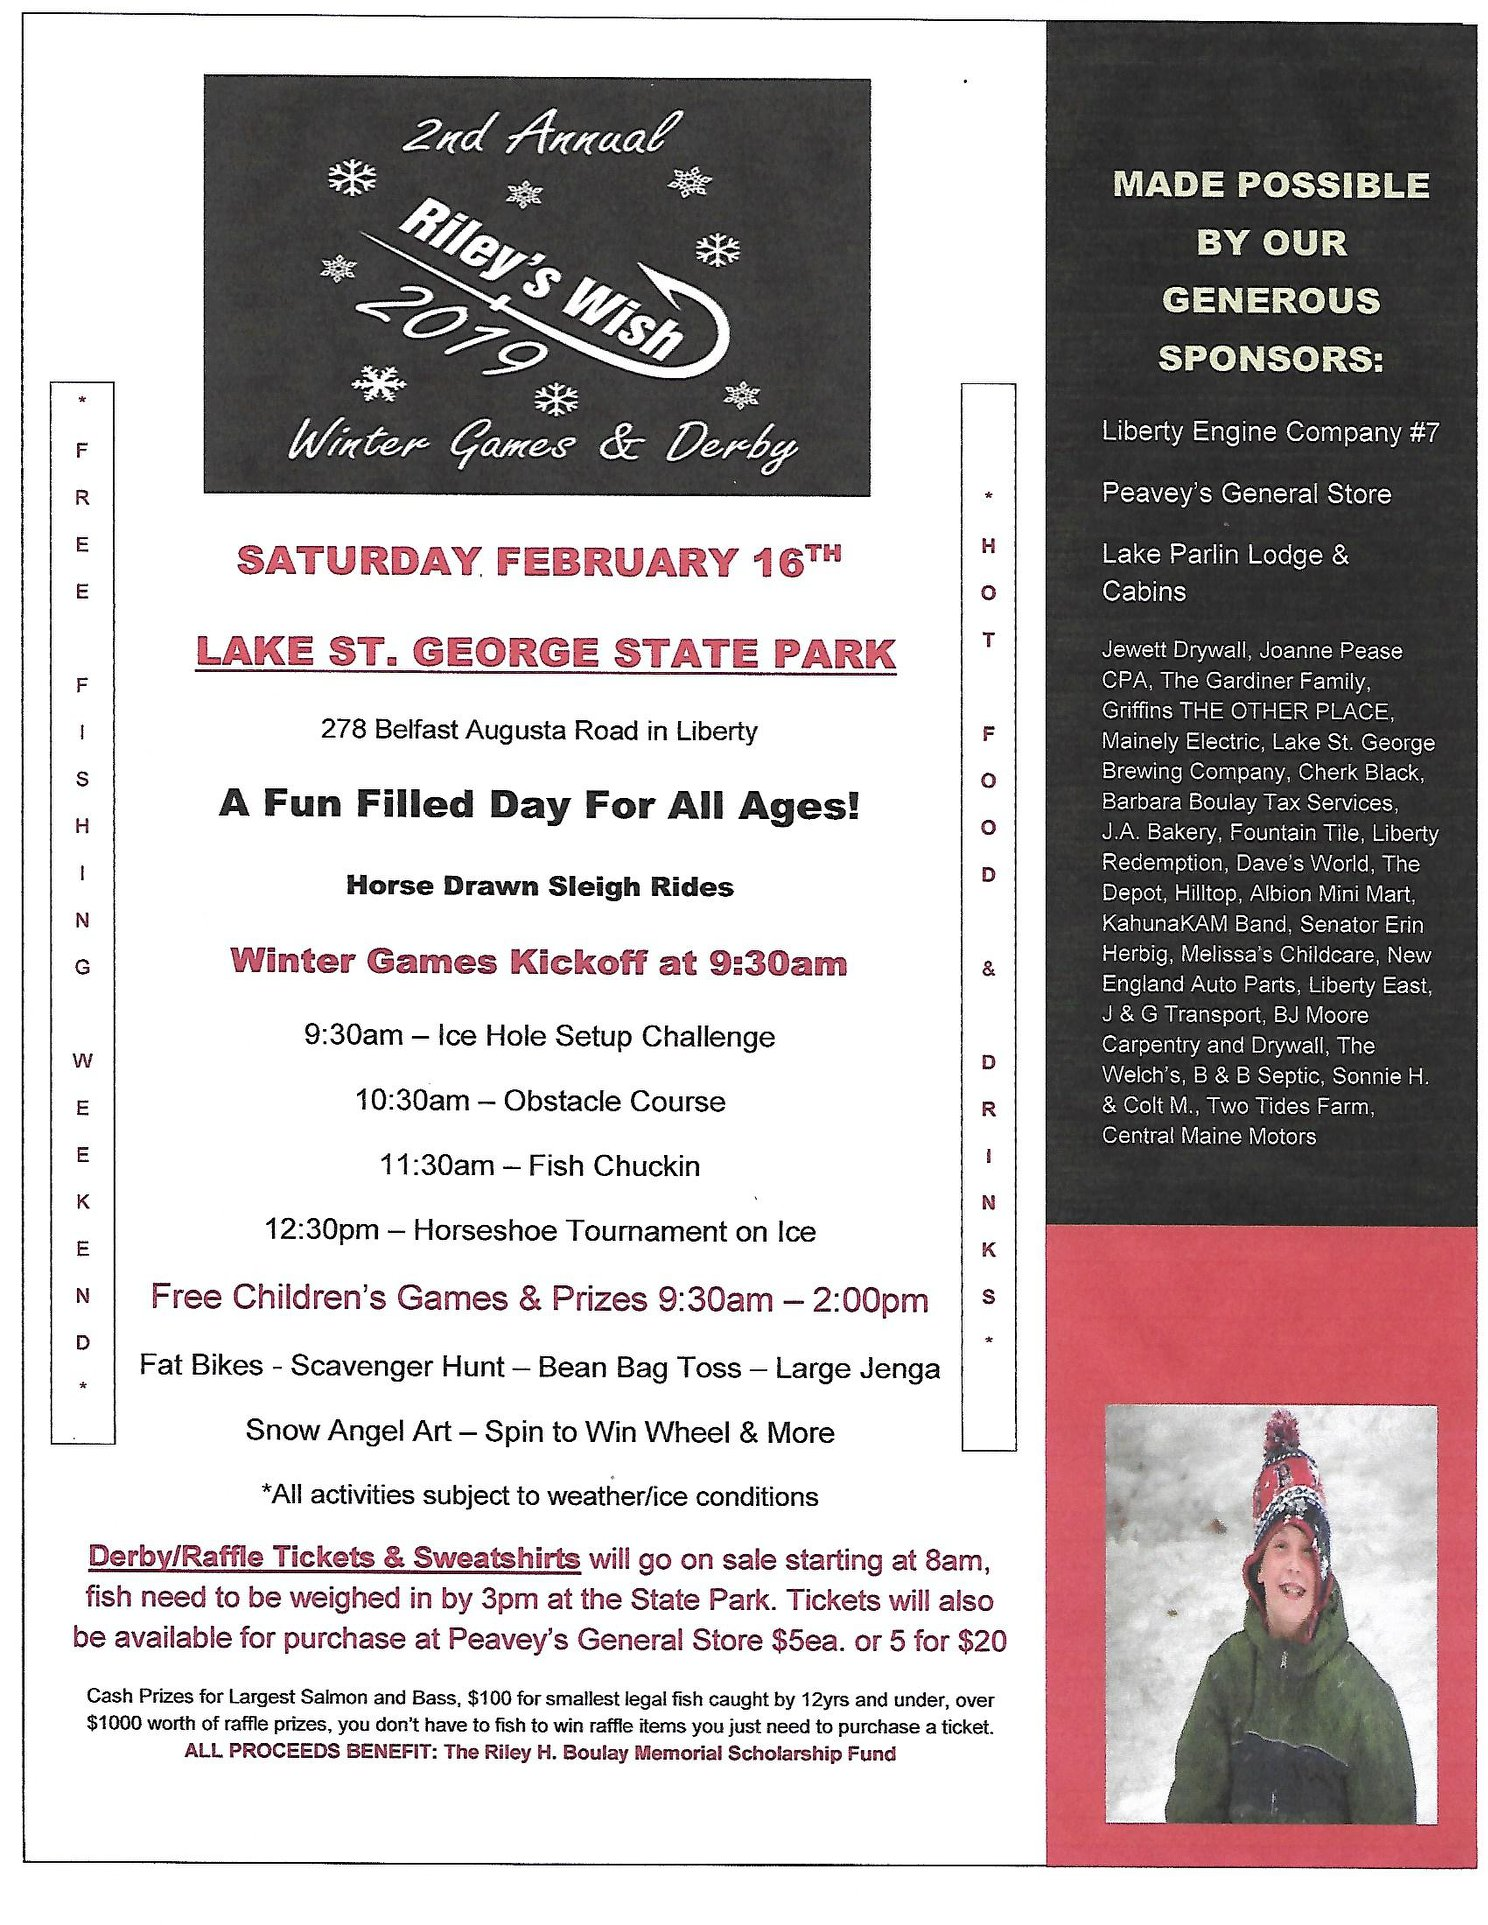 2nd Annual Riley's Wish Winter Games & Derby – C What's On